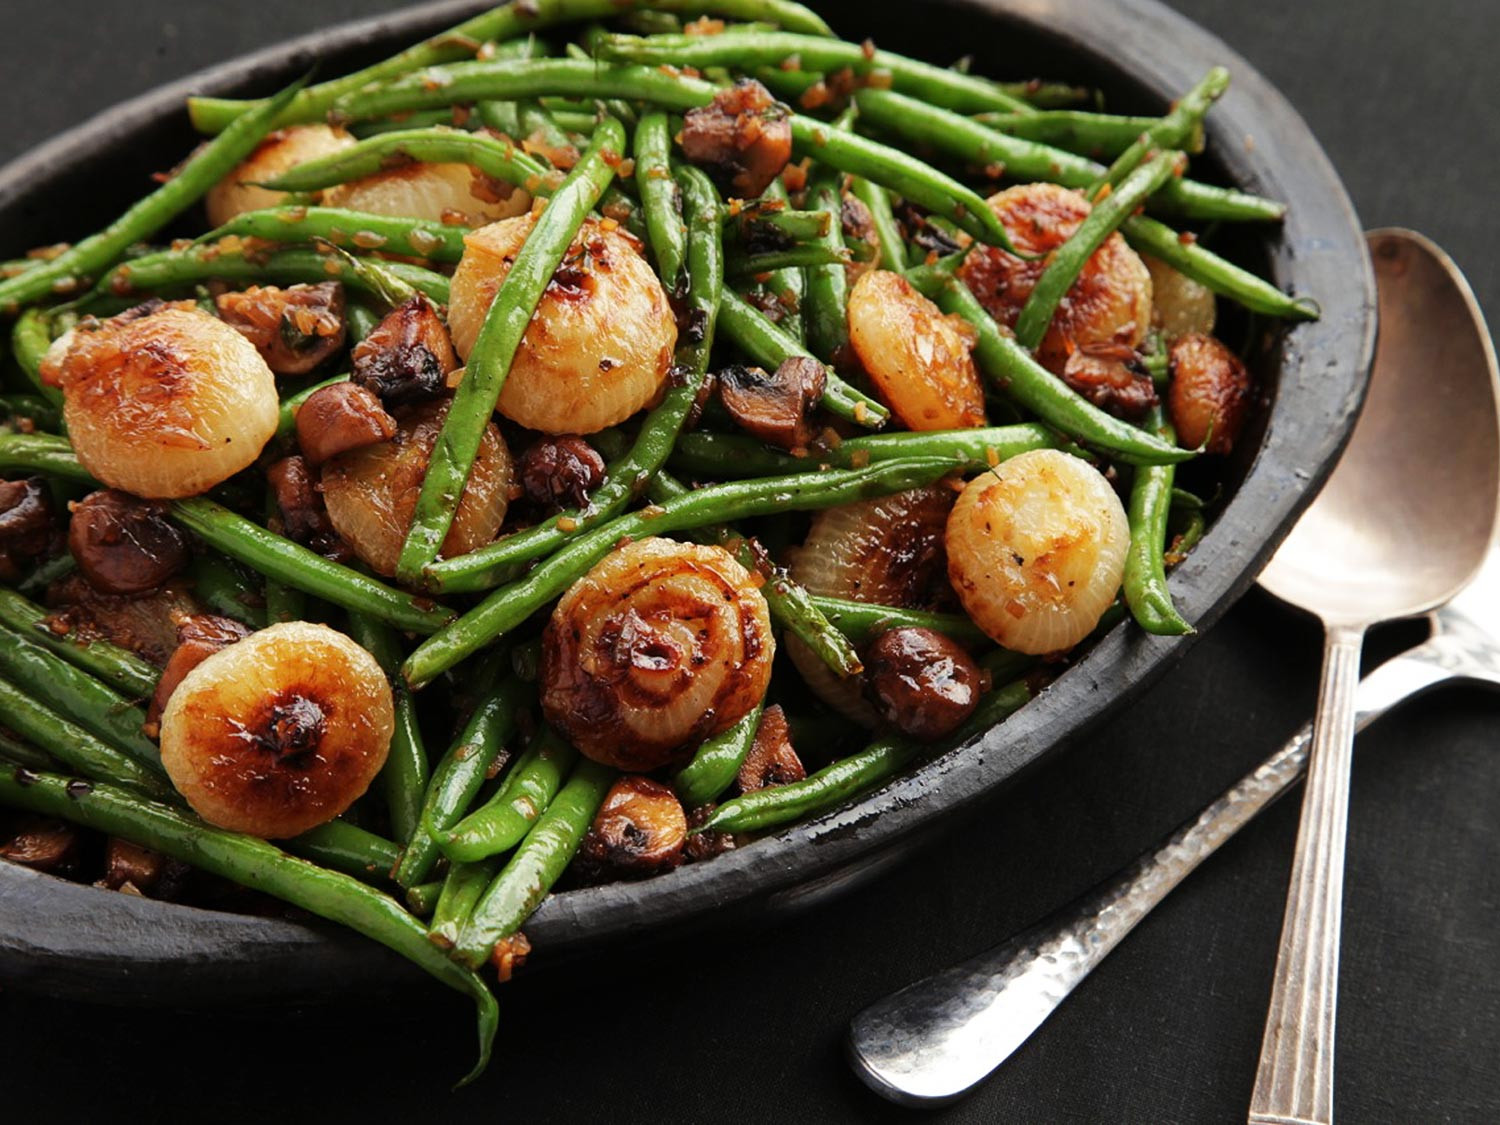 Best Green Bean Recipes  The Food Lab Sautéed Green Beans With Mushrooms and